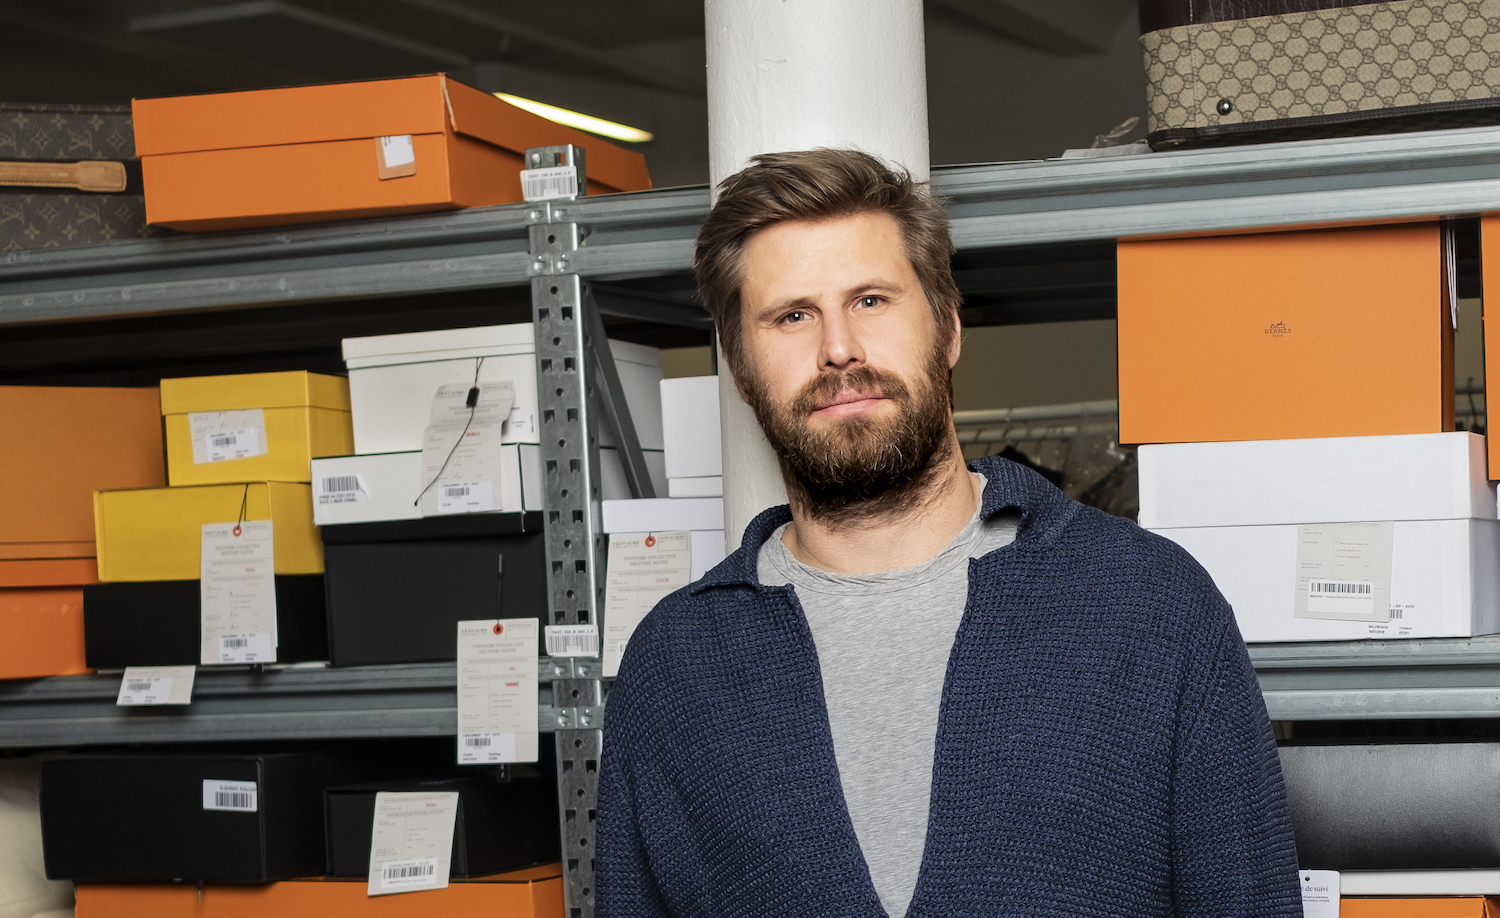 Ex-Lazada boss Max Bittner on his move from ecommerce to 'recommerce'